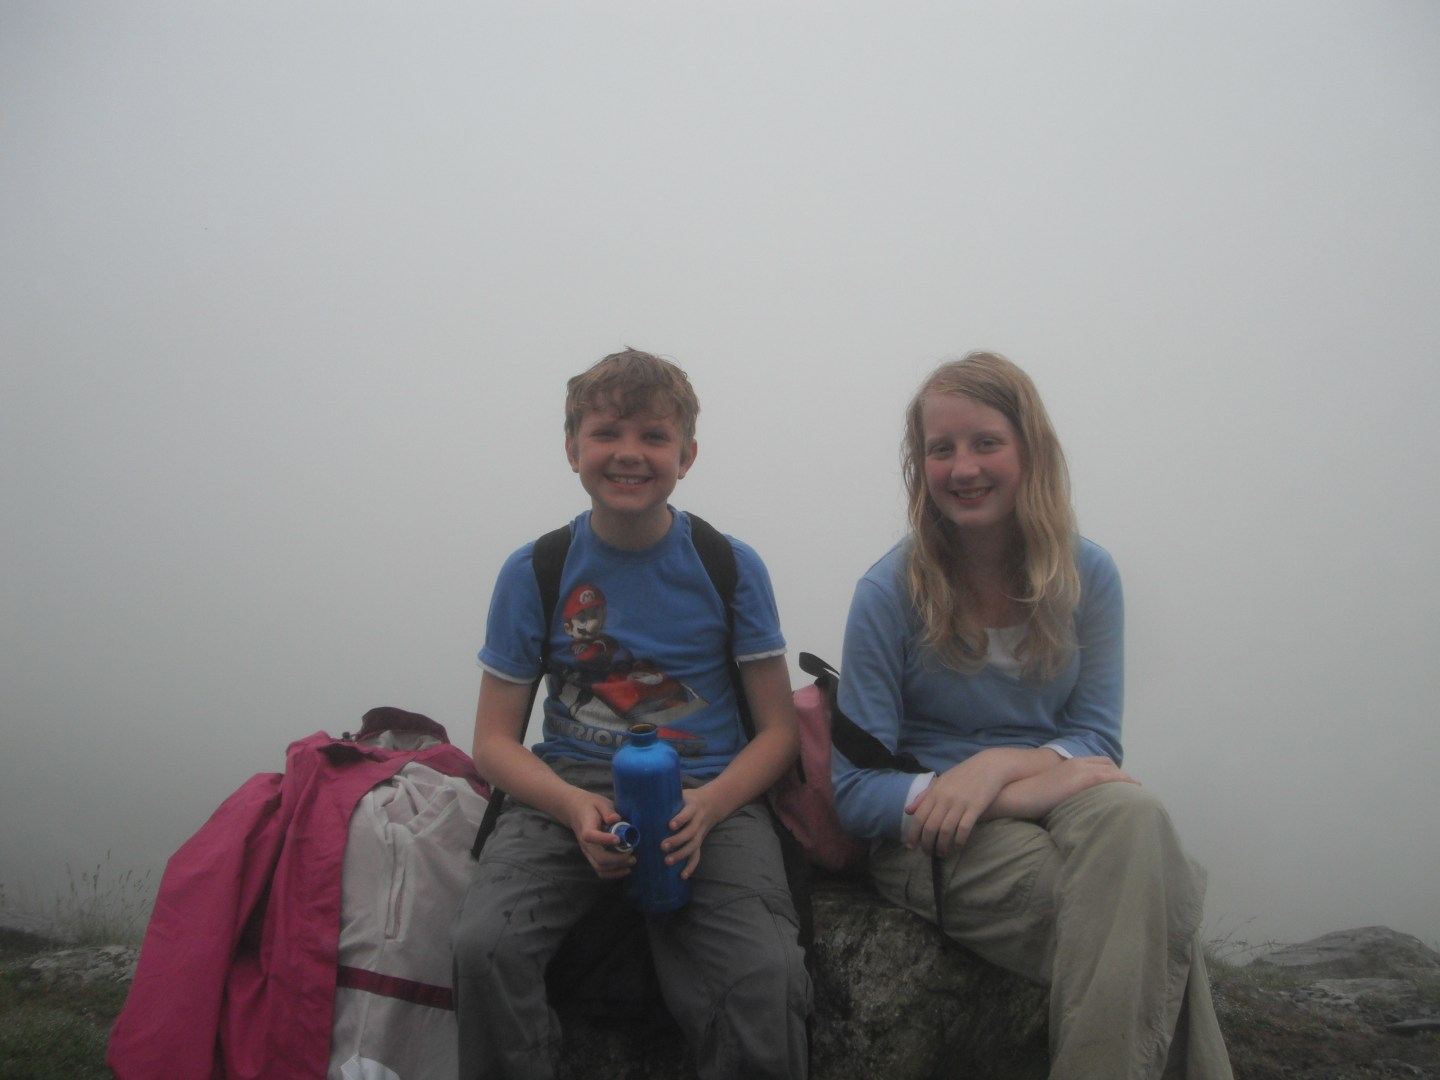 Xene and Lochlan taking another rest during their Mount Snowdon climb